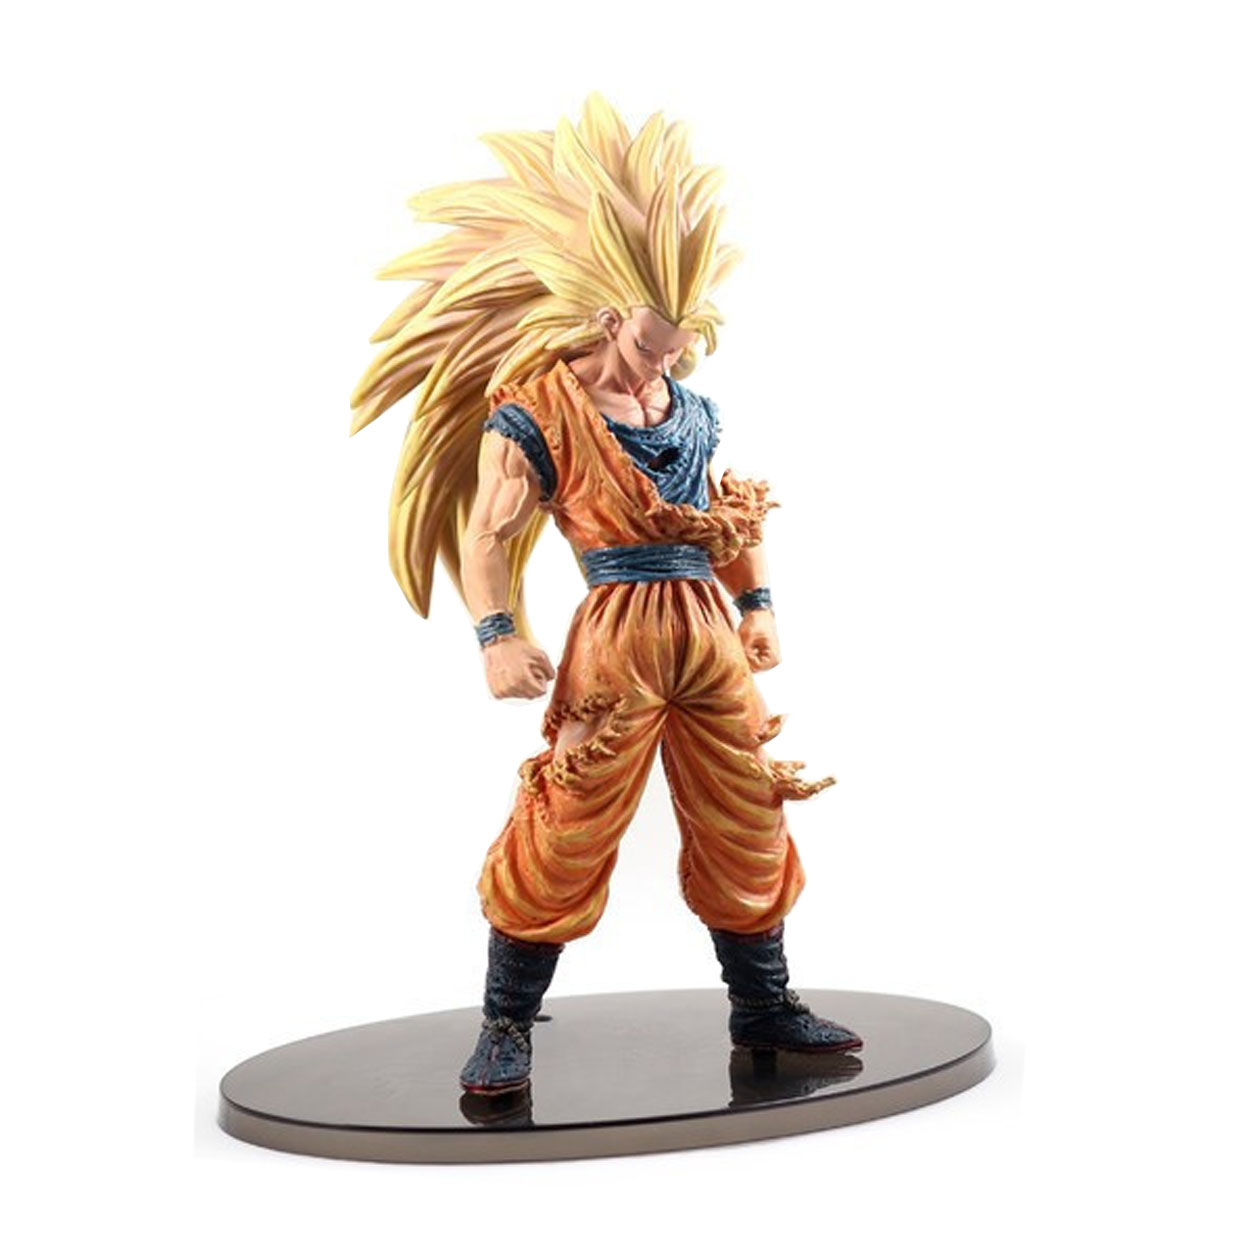 Chanycore 21CM Japanese Anime Dragon BALL Z Battle Damage Ver Super Saiyan 3 SON GOKU GOHAN Vegeta Action Figure PVC Model Toy 16cm anime dragon ball z goku action figure son gokou shfiguarts super saiyan god resurrection f model doll